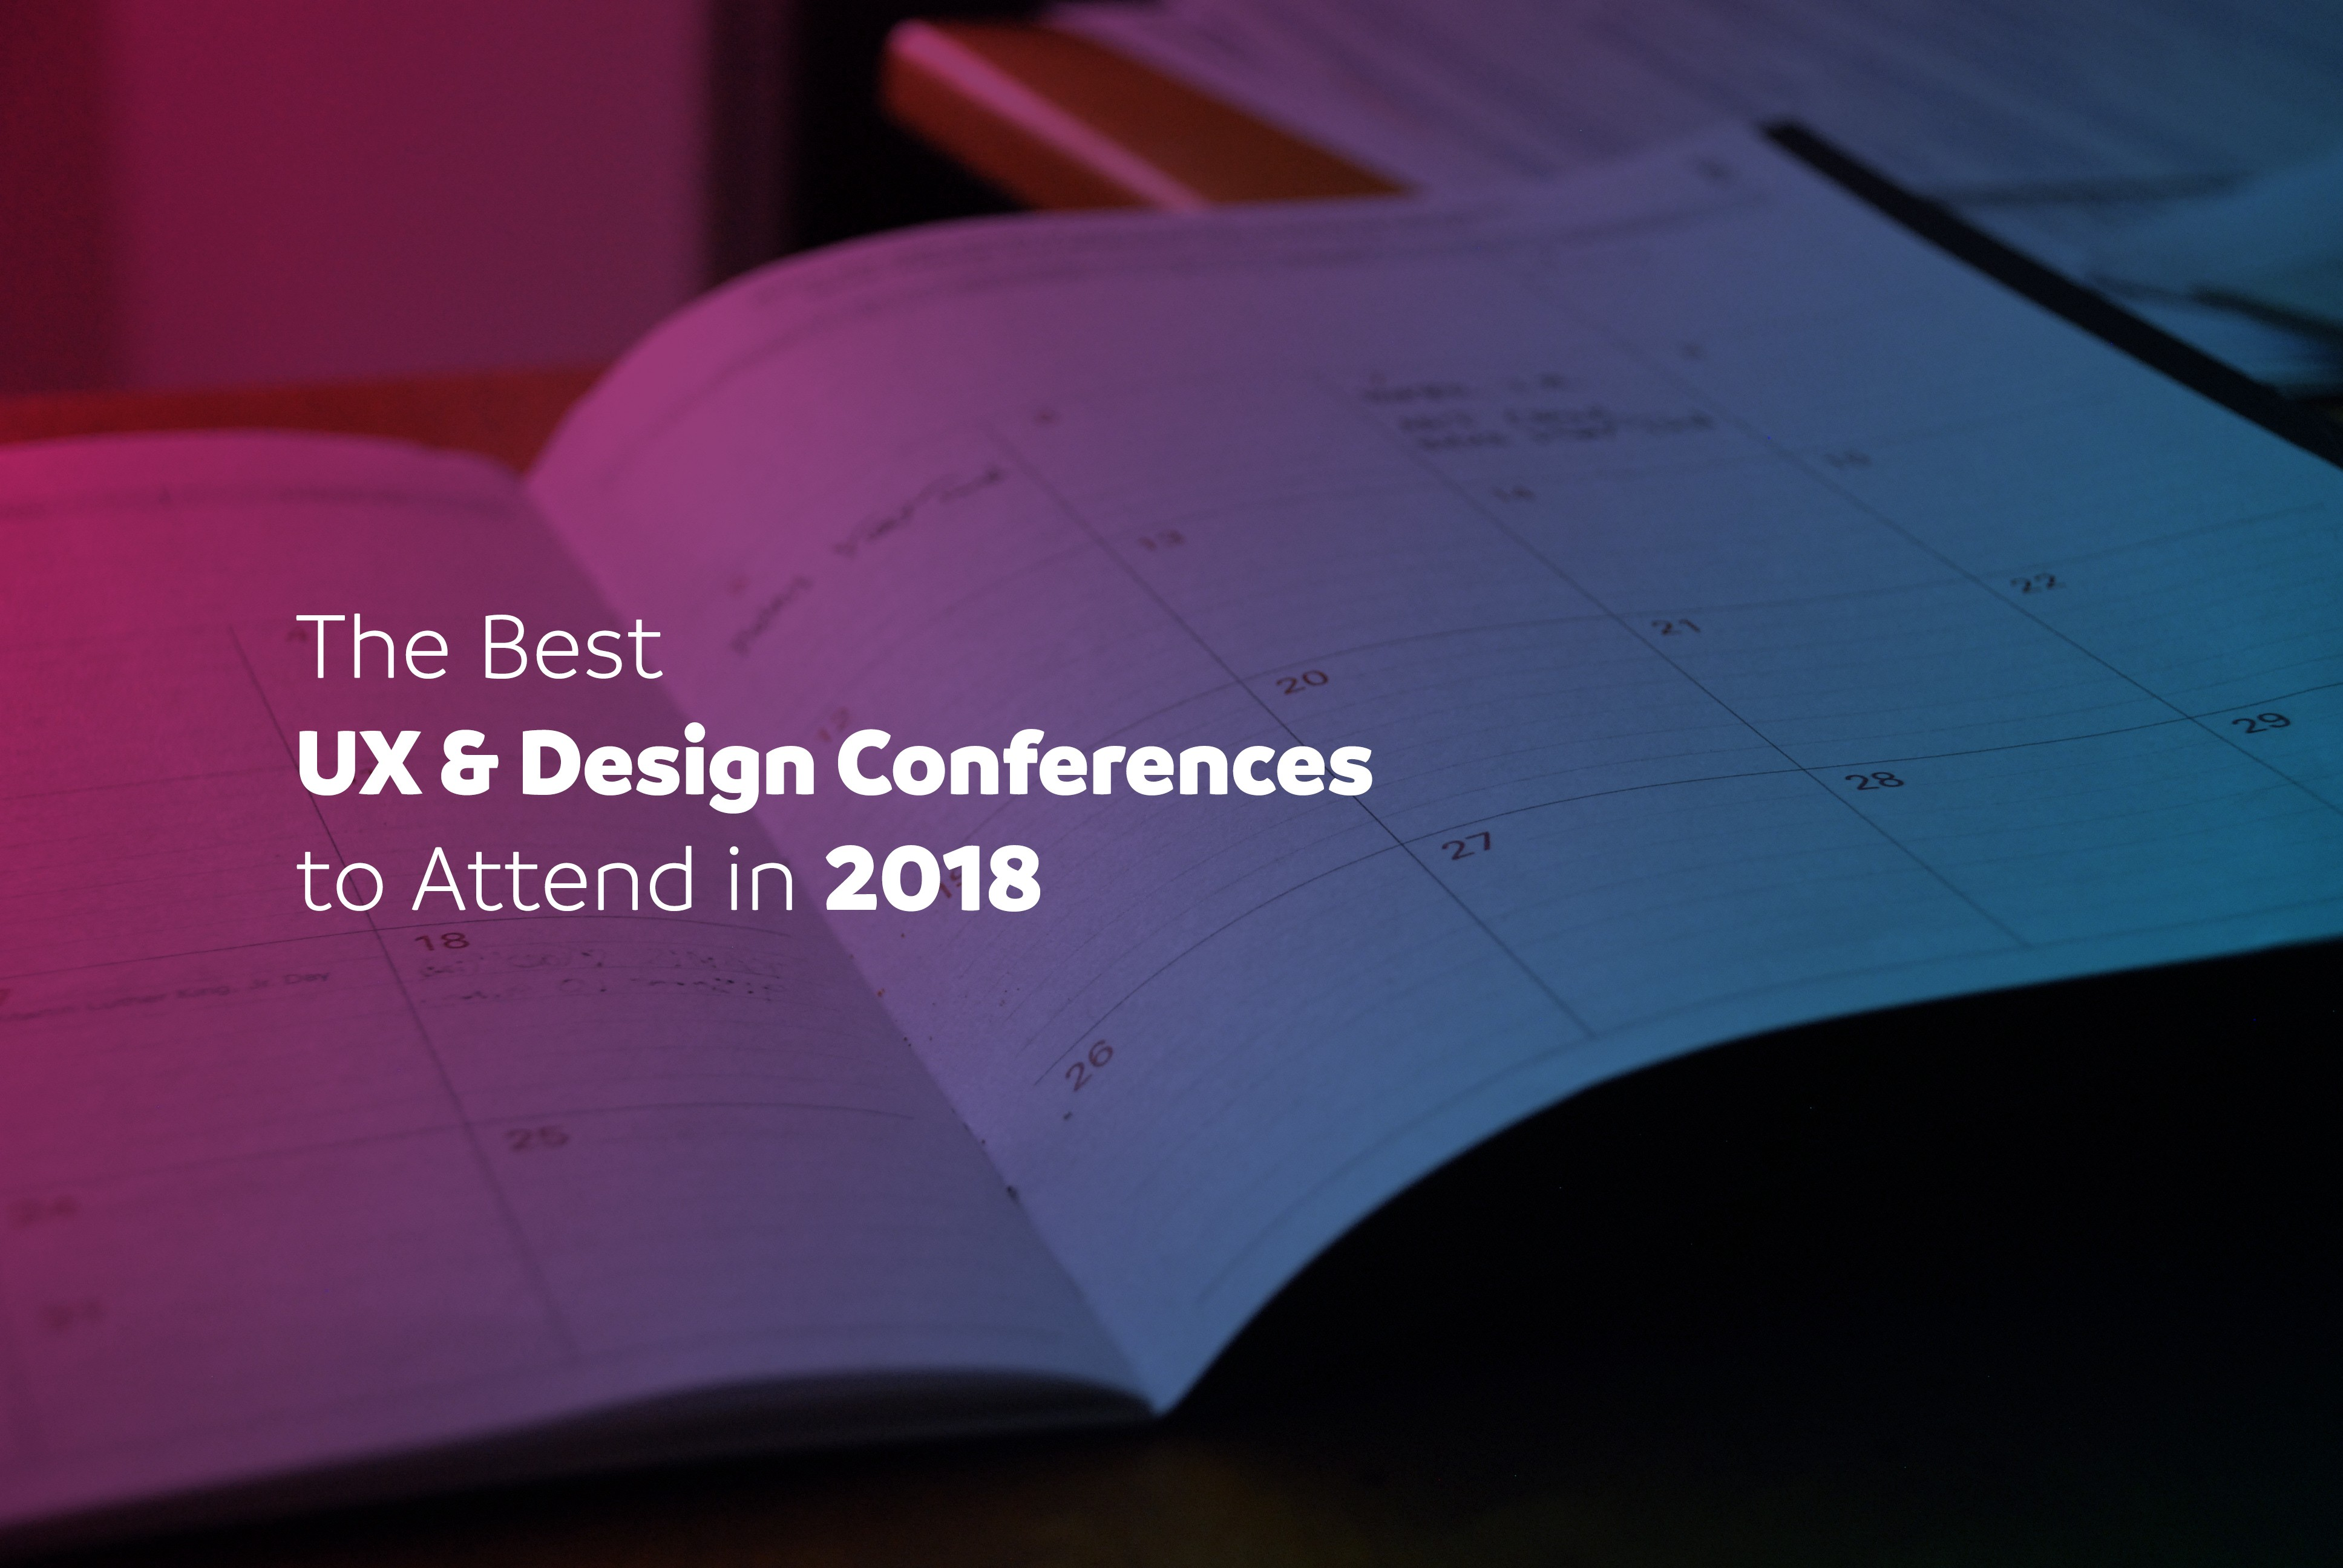 The Best UX & Design Conferences to Attend in 2018 - UX Collective